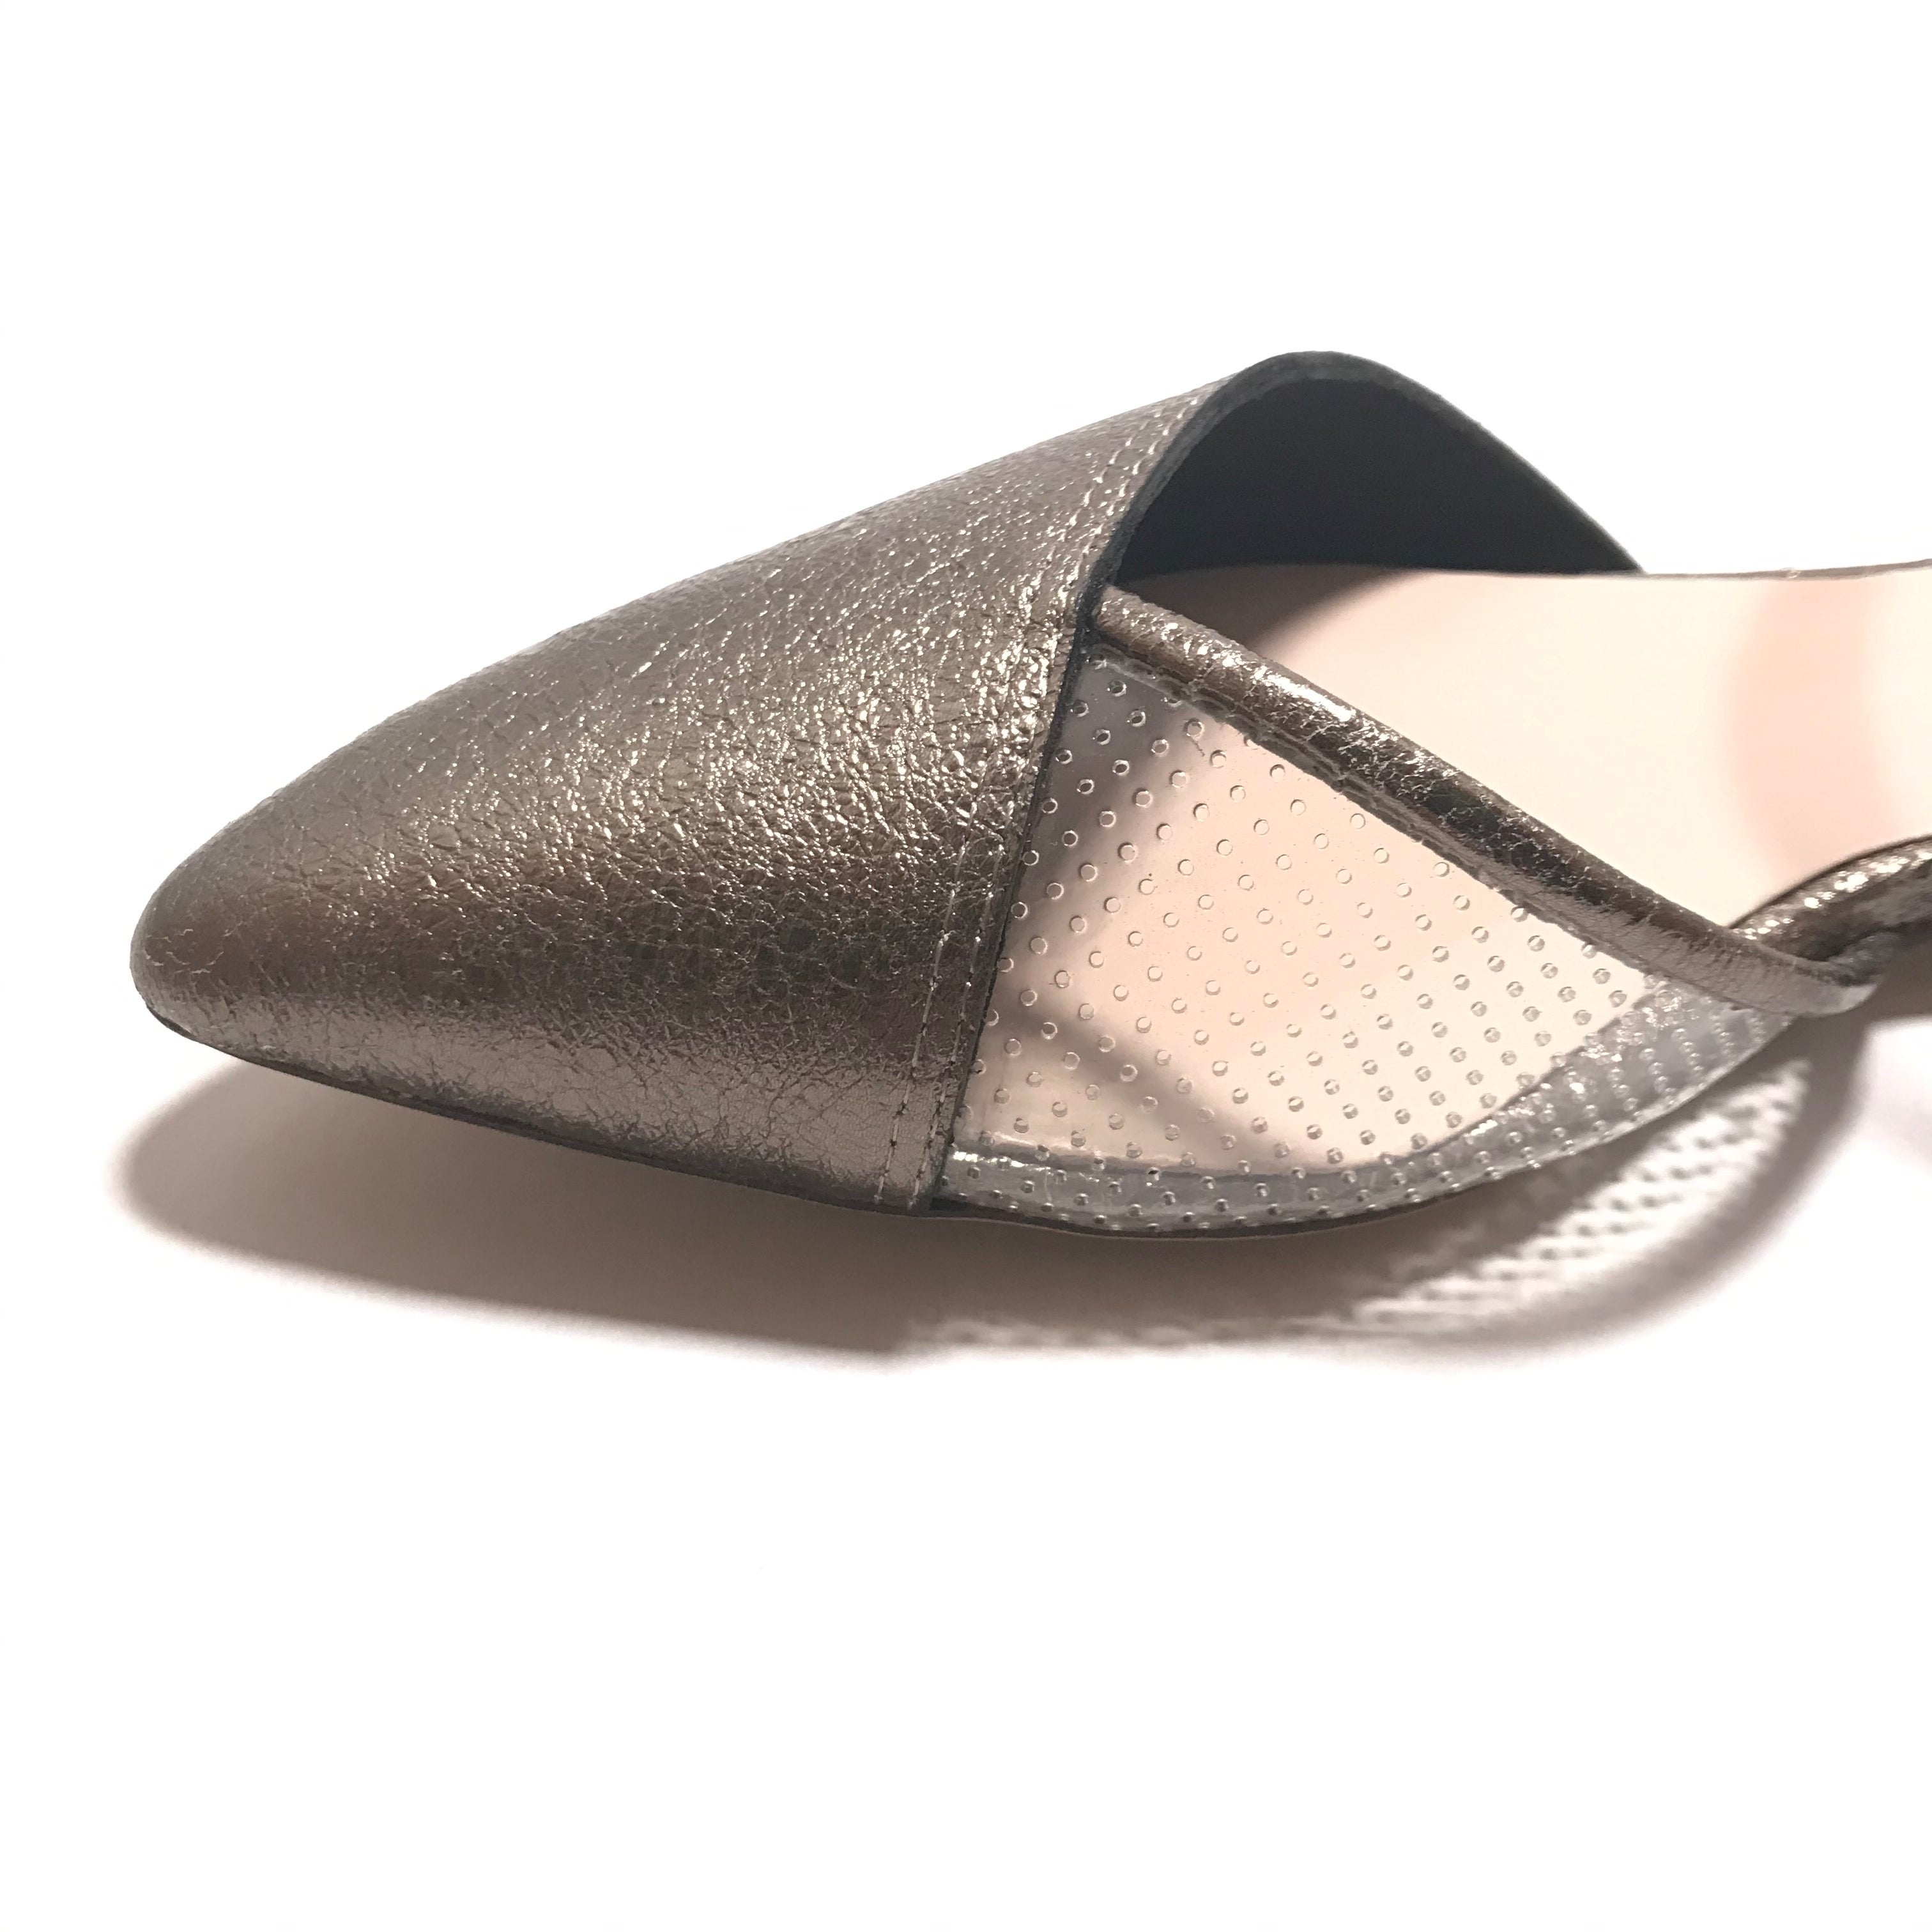 "Toe detail of All Black pointed toe shoes with a heel of 1/4"" height with a double elastic ankle strap in the color of silver"